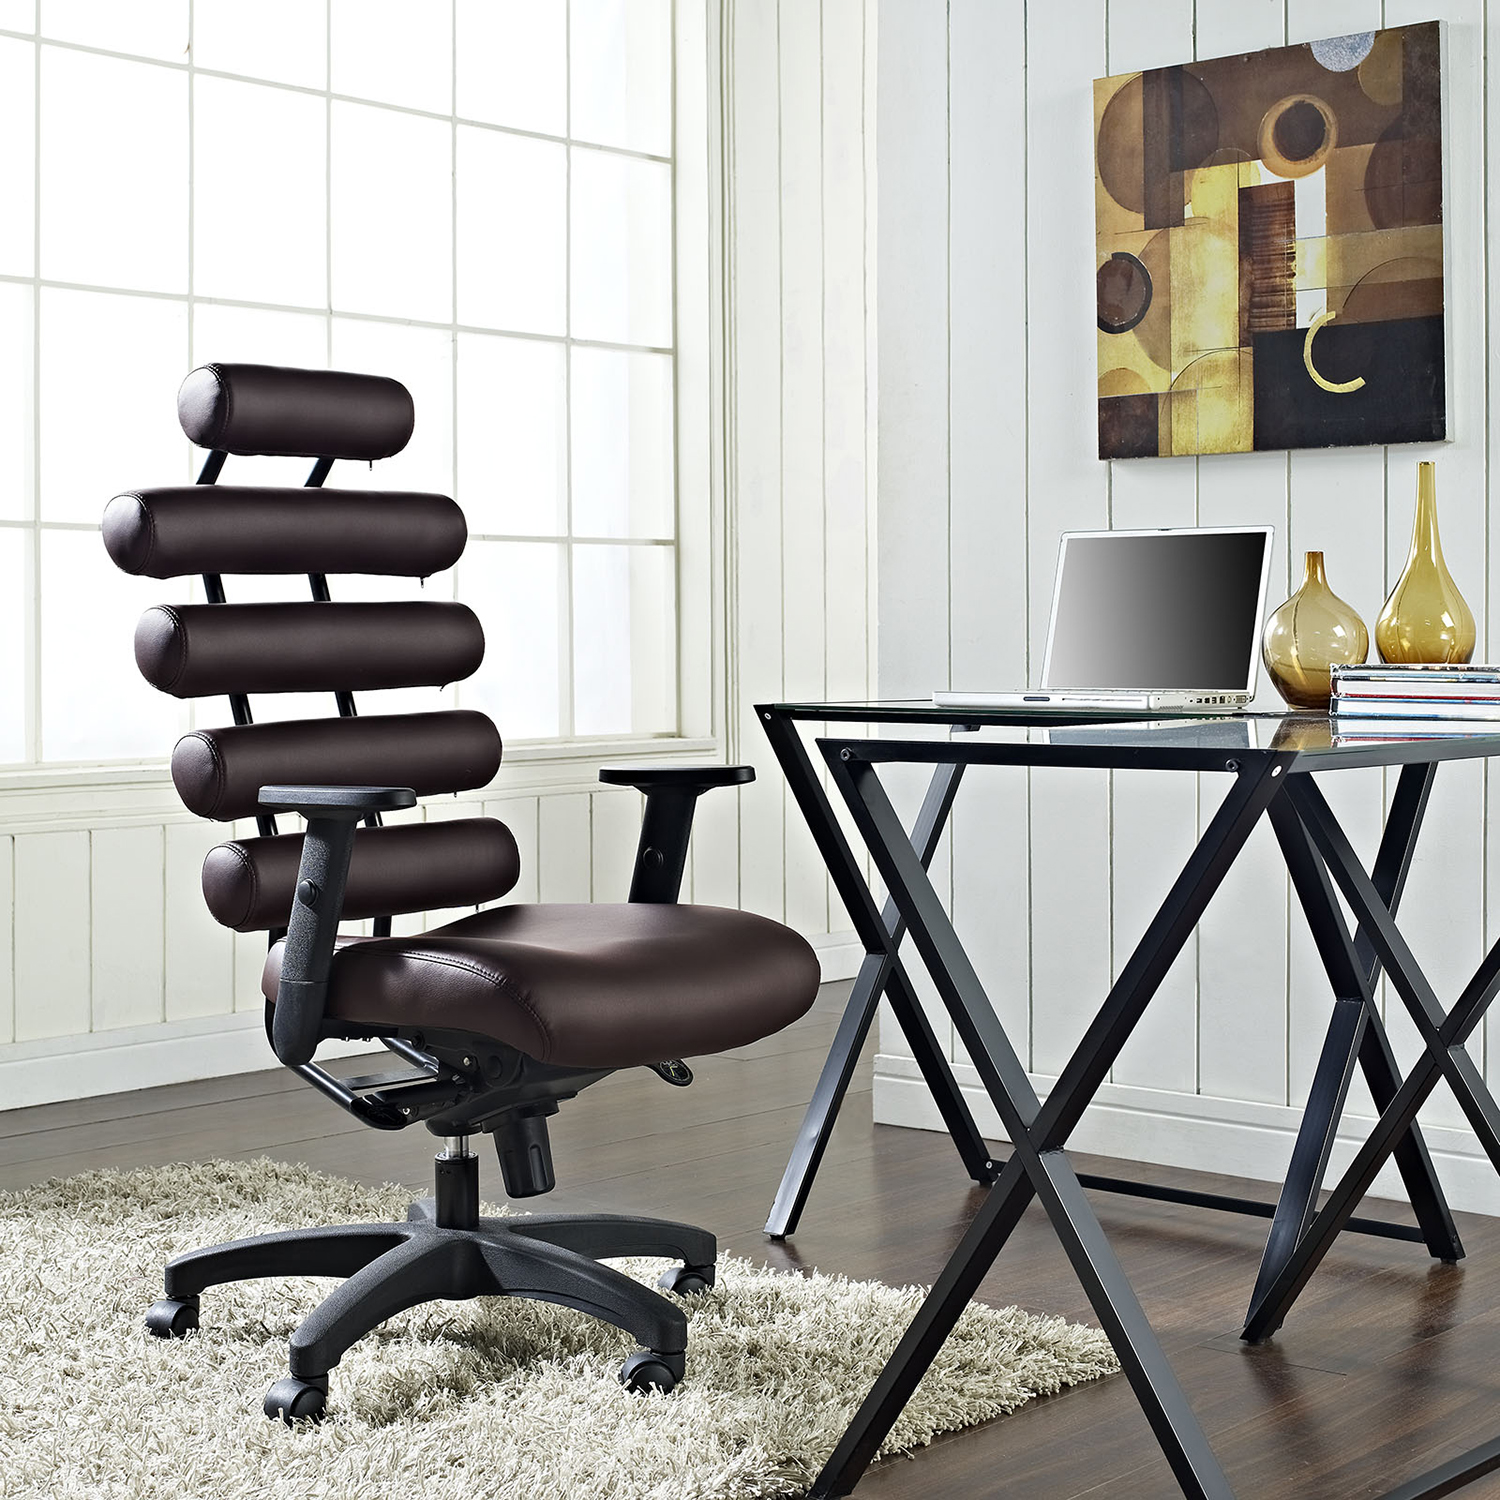 Pillow Faux Leather Office Chair - Height Adjustable, Dark Brown - EEI-274-DBR